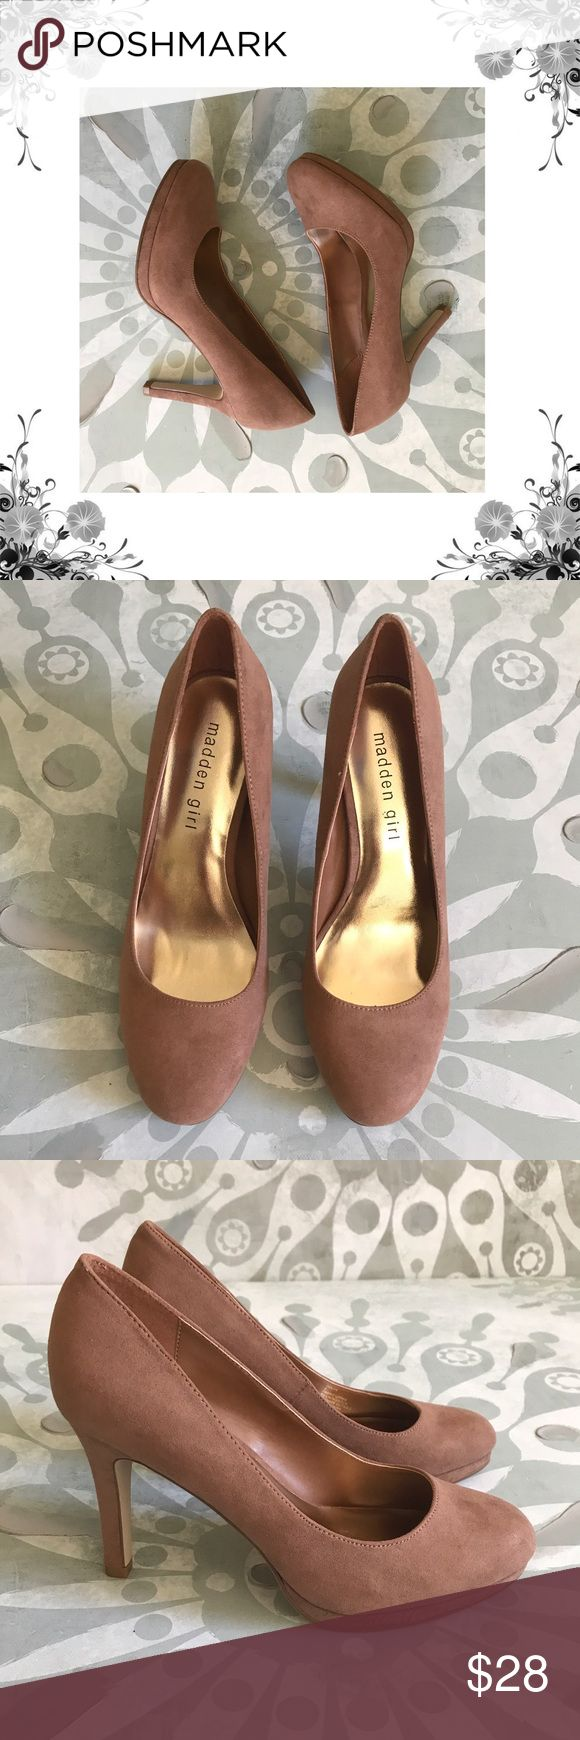 "Madden Girl 'Dolce' Dark Nude Faux Suede Pumps Manufacturer Color is Dark Nude. New with box. Classic pumps. Heel Height is approx 3 3/4"". Platform Height is approx 1/2"". Slip On. Faux Suede fabric. Bundle for discounts! Thank you for shopping my closet! Madden Girl Shoes Heels"